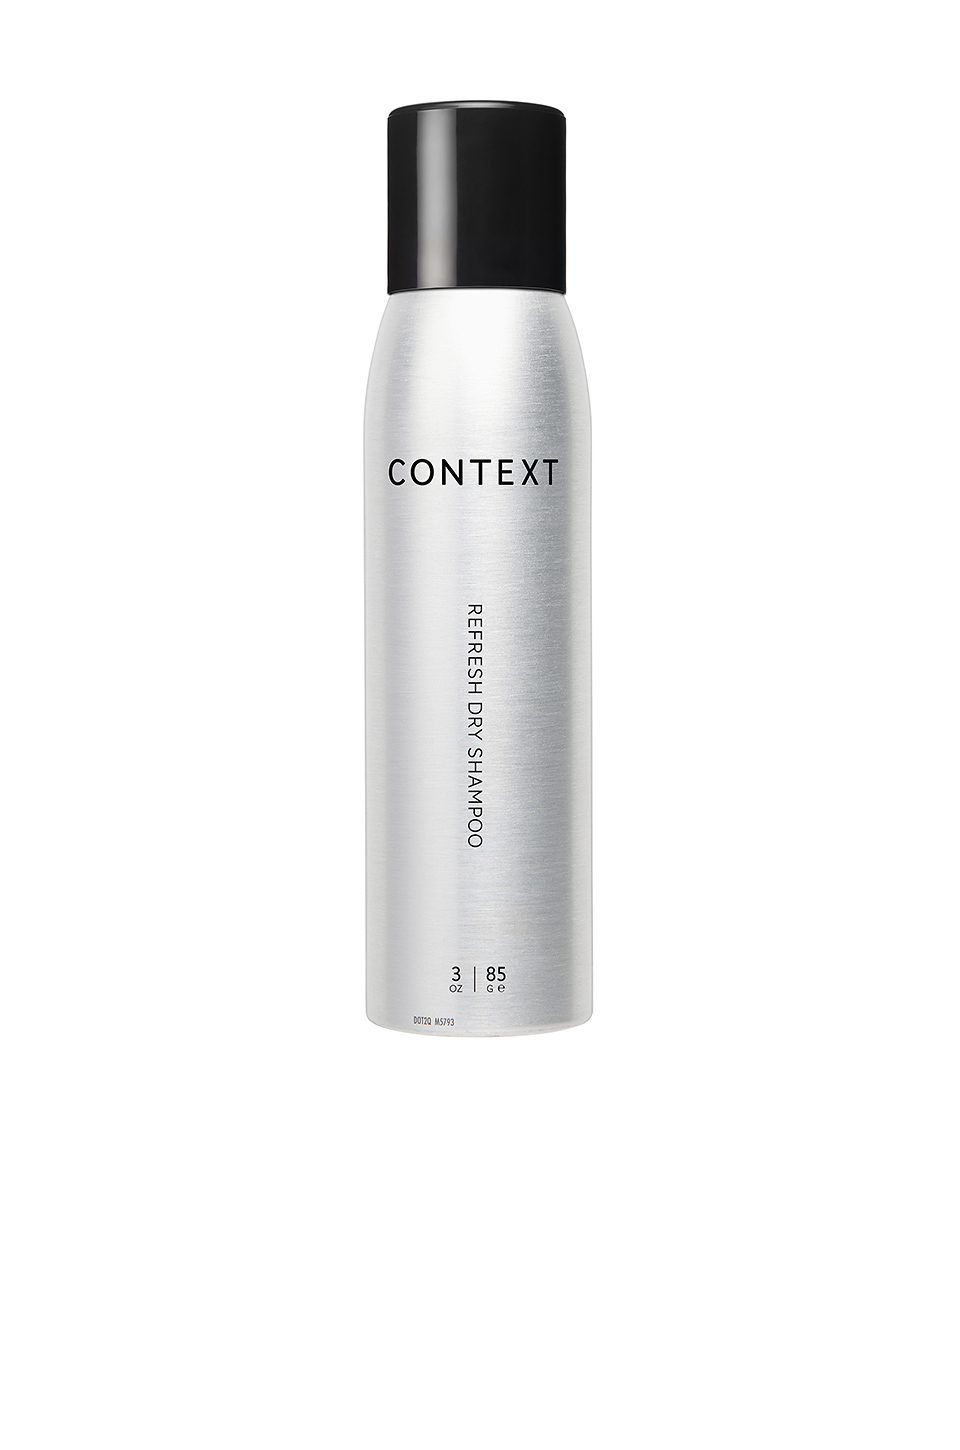 Context Refresh Dry Shampoo in